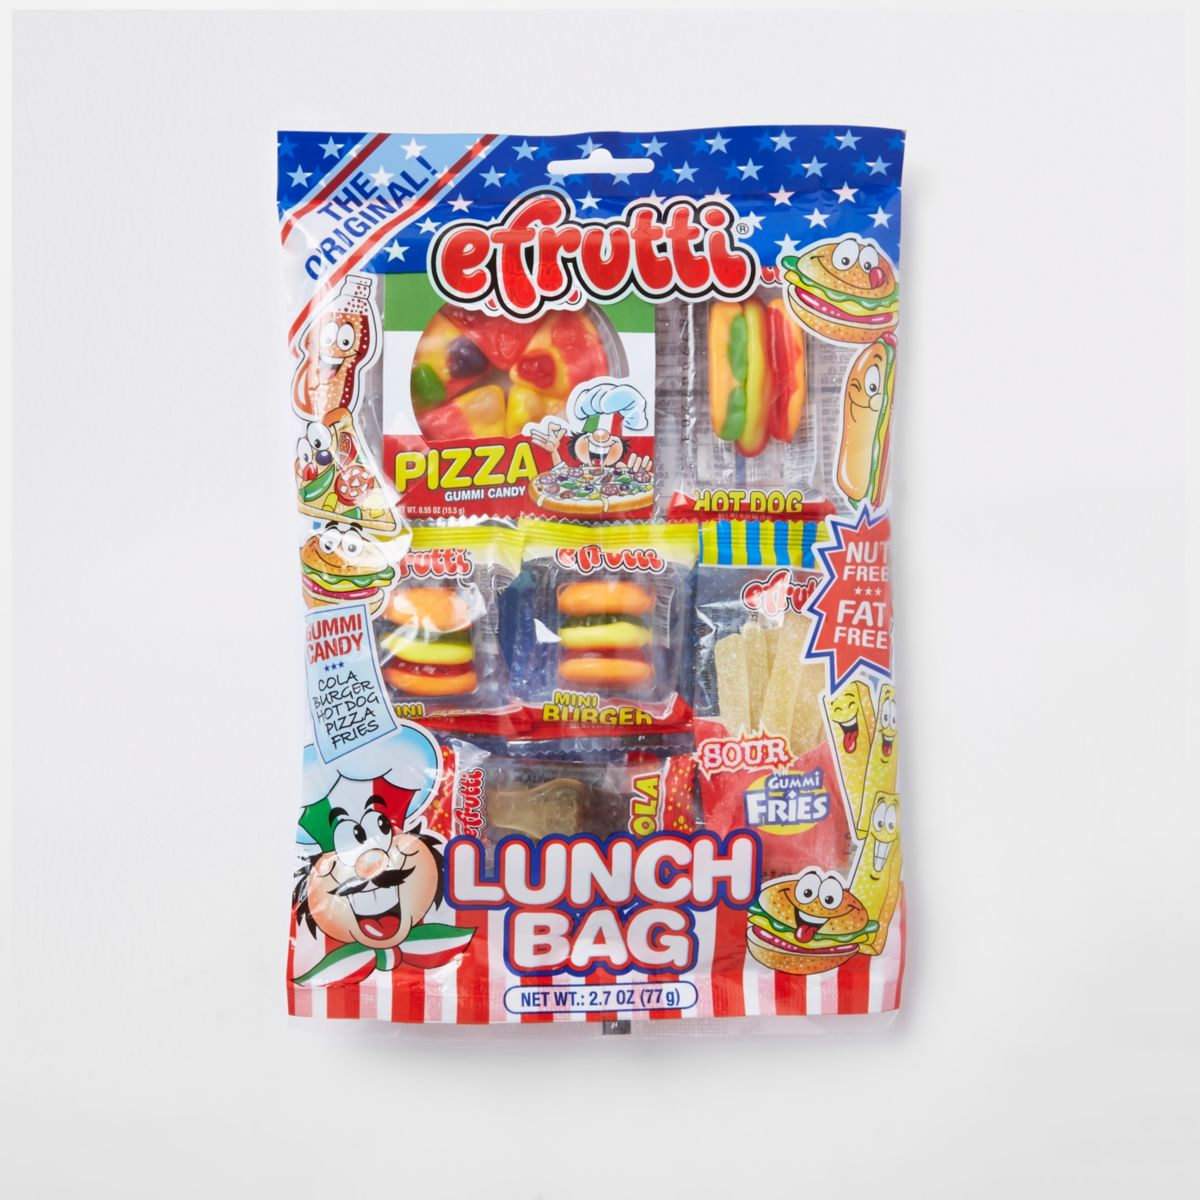 Lunch bag sweets